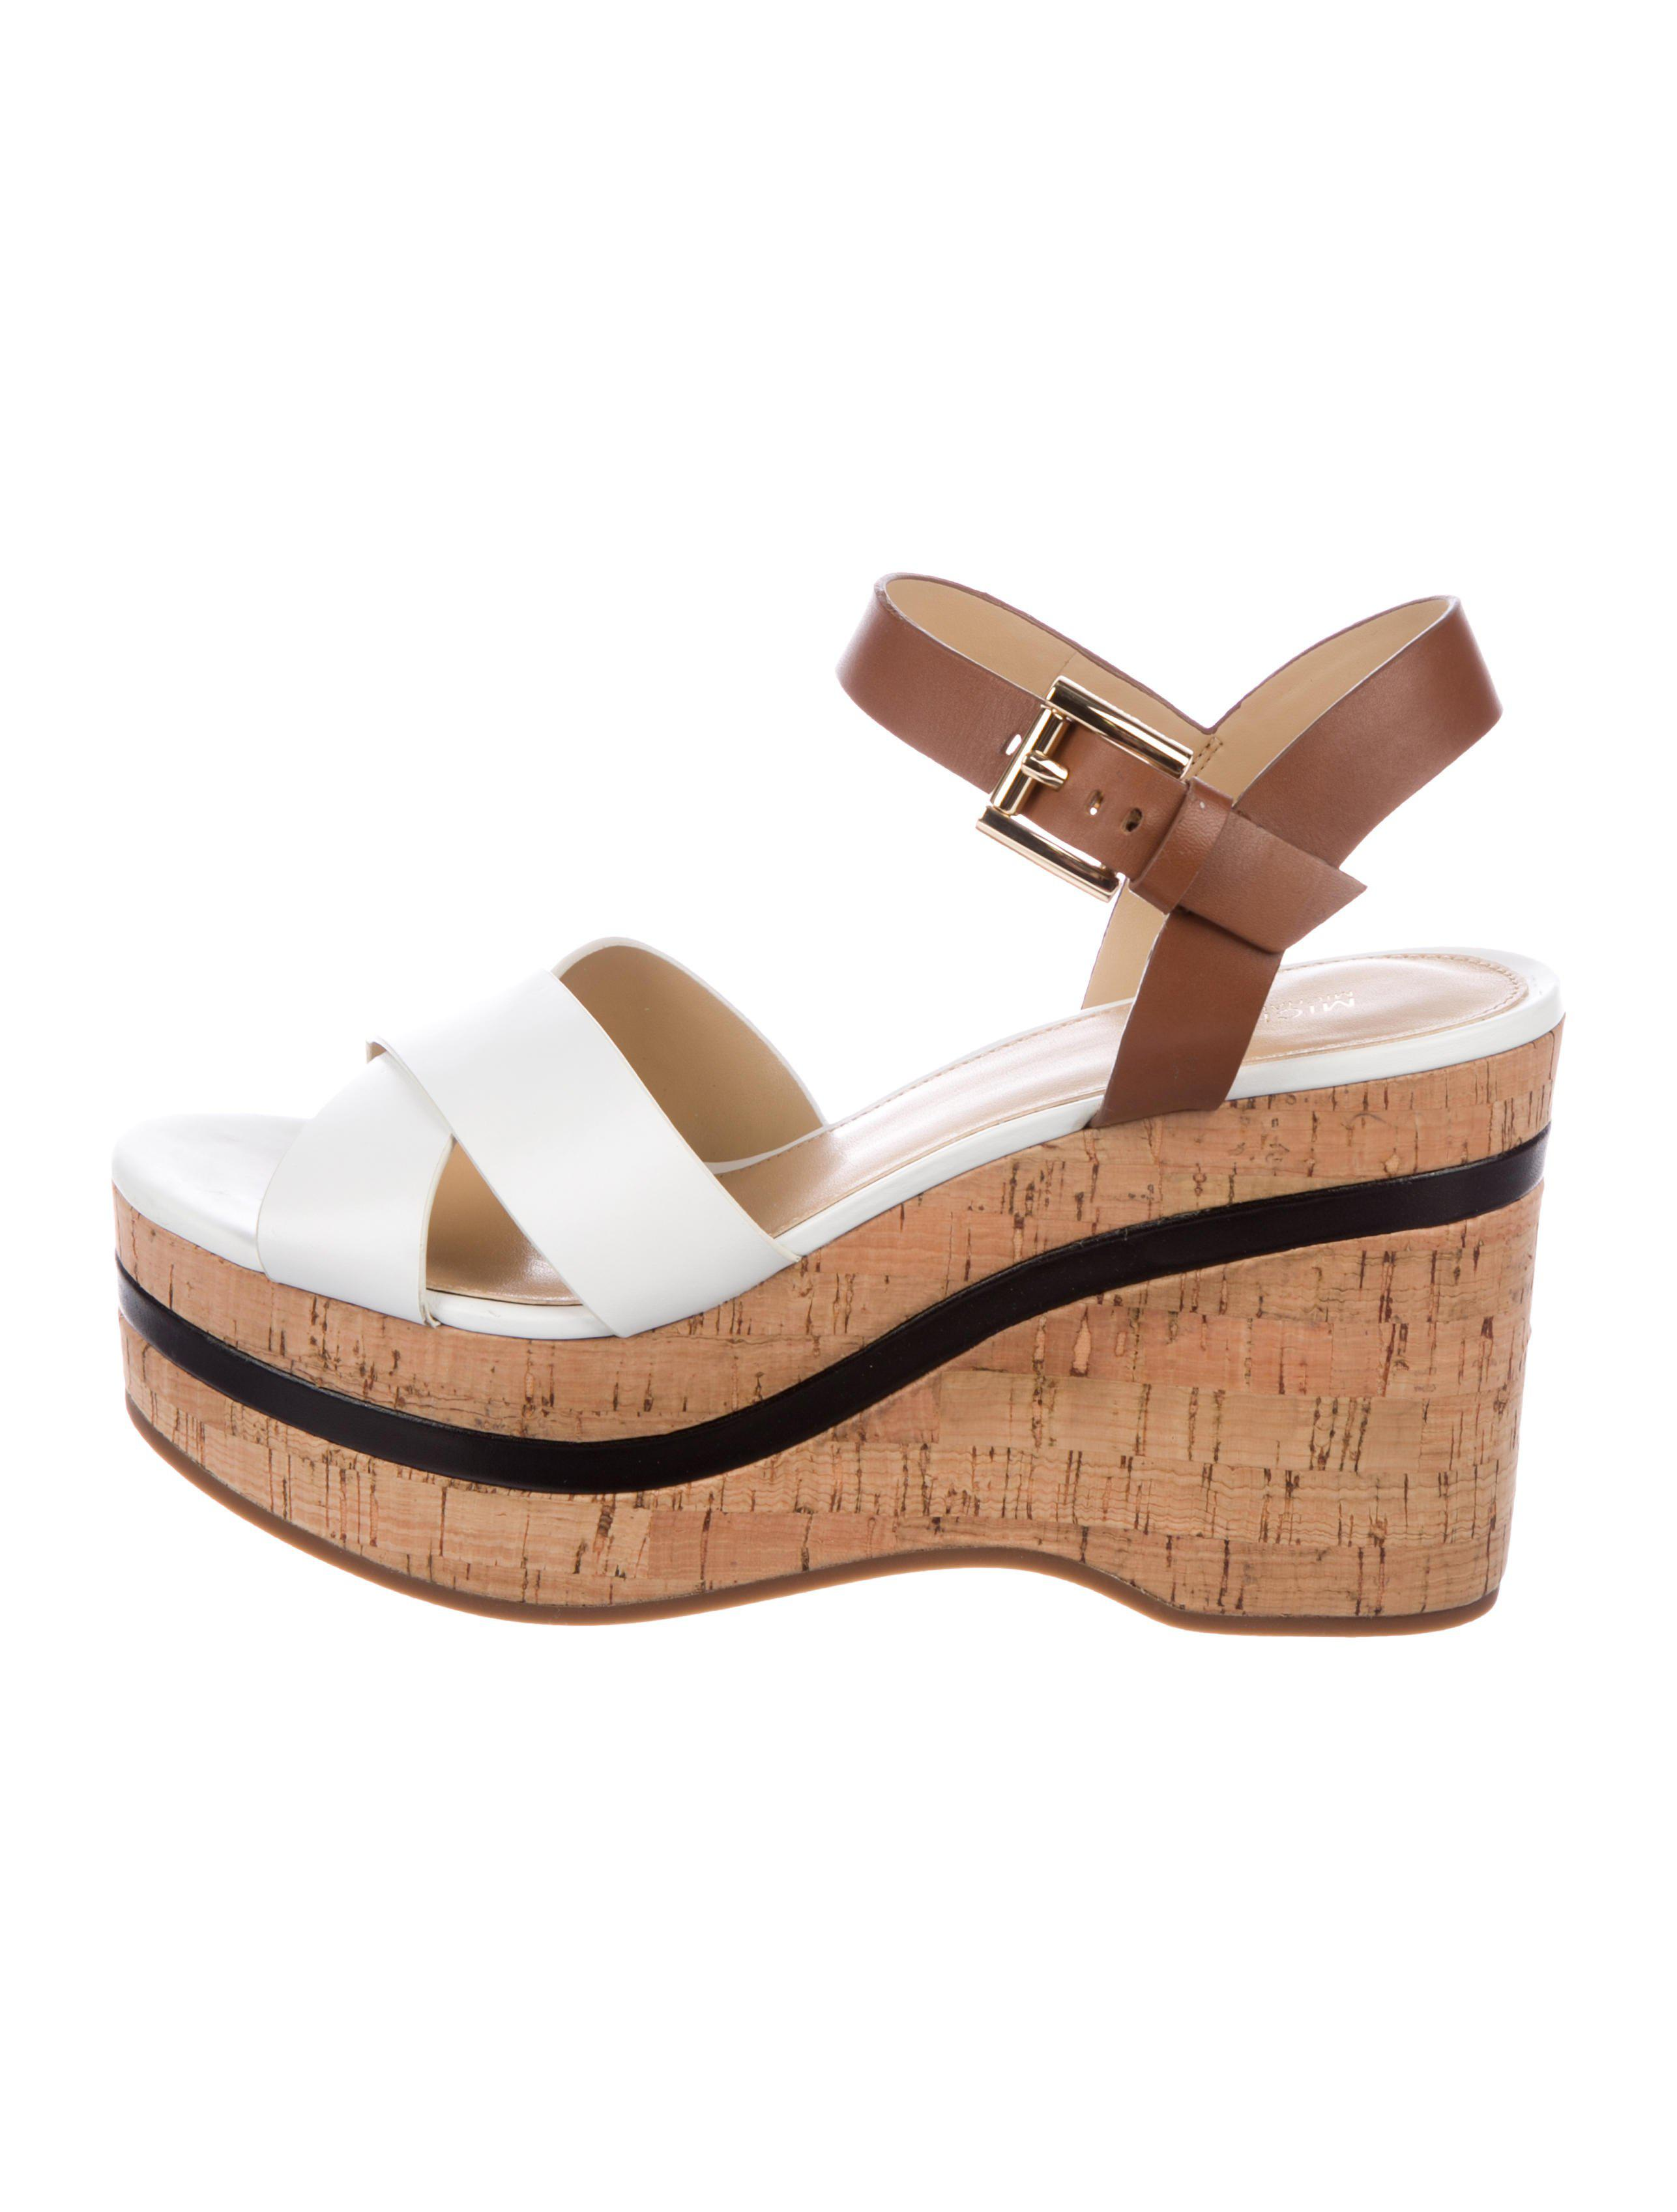 3d17f4330d2 MICHAEL Michael Kors. Women s Natural Michael Kors Crossover Wedge Sandals  White